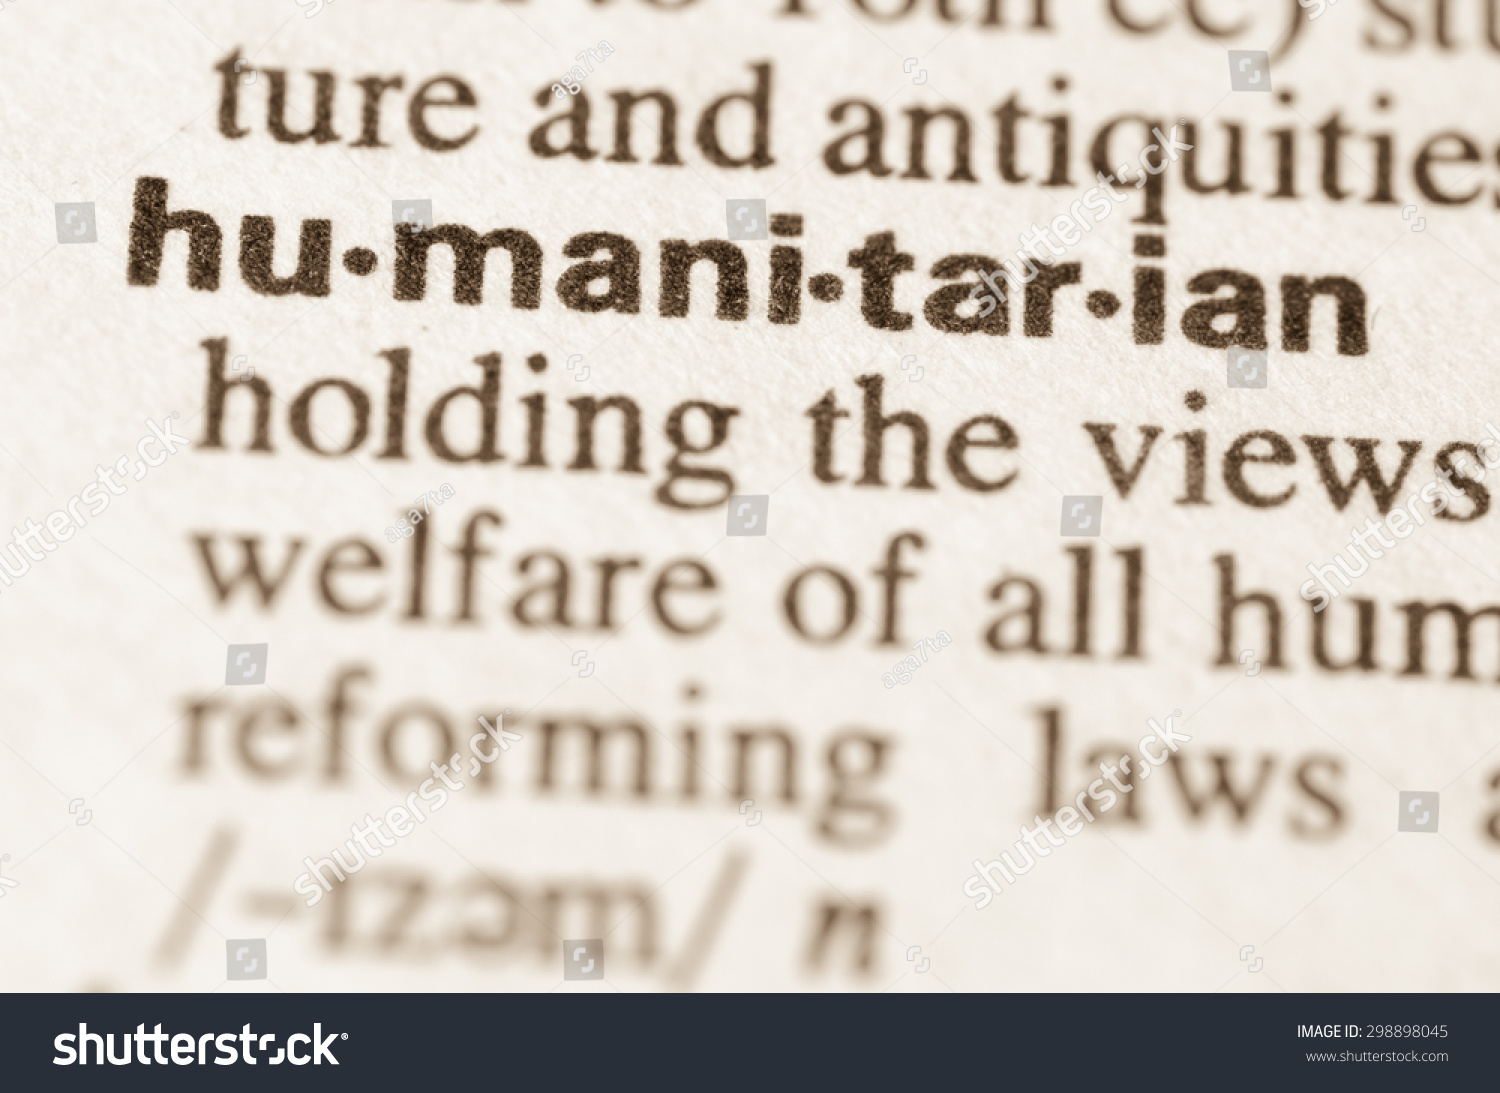 definition word humanitarian dictionary stock photo  definition of word humanitarian in dictionary